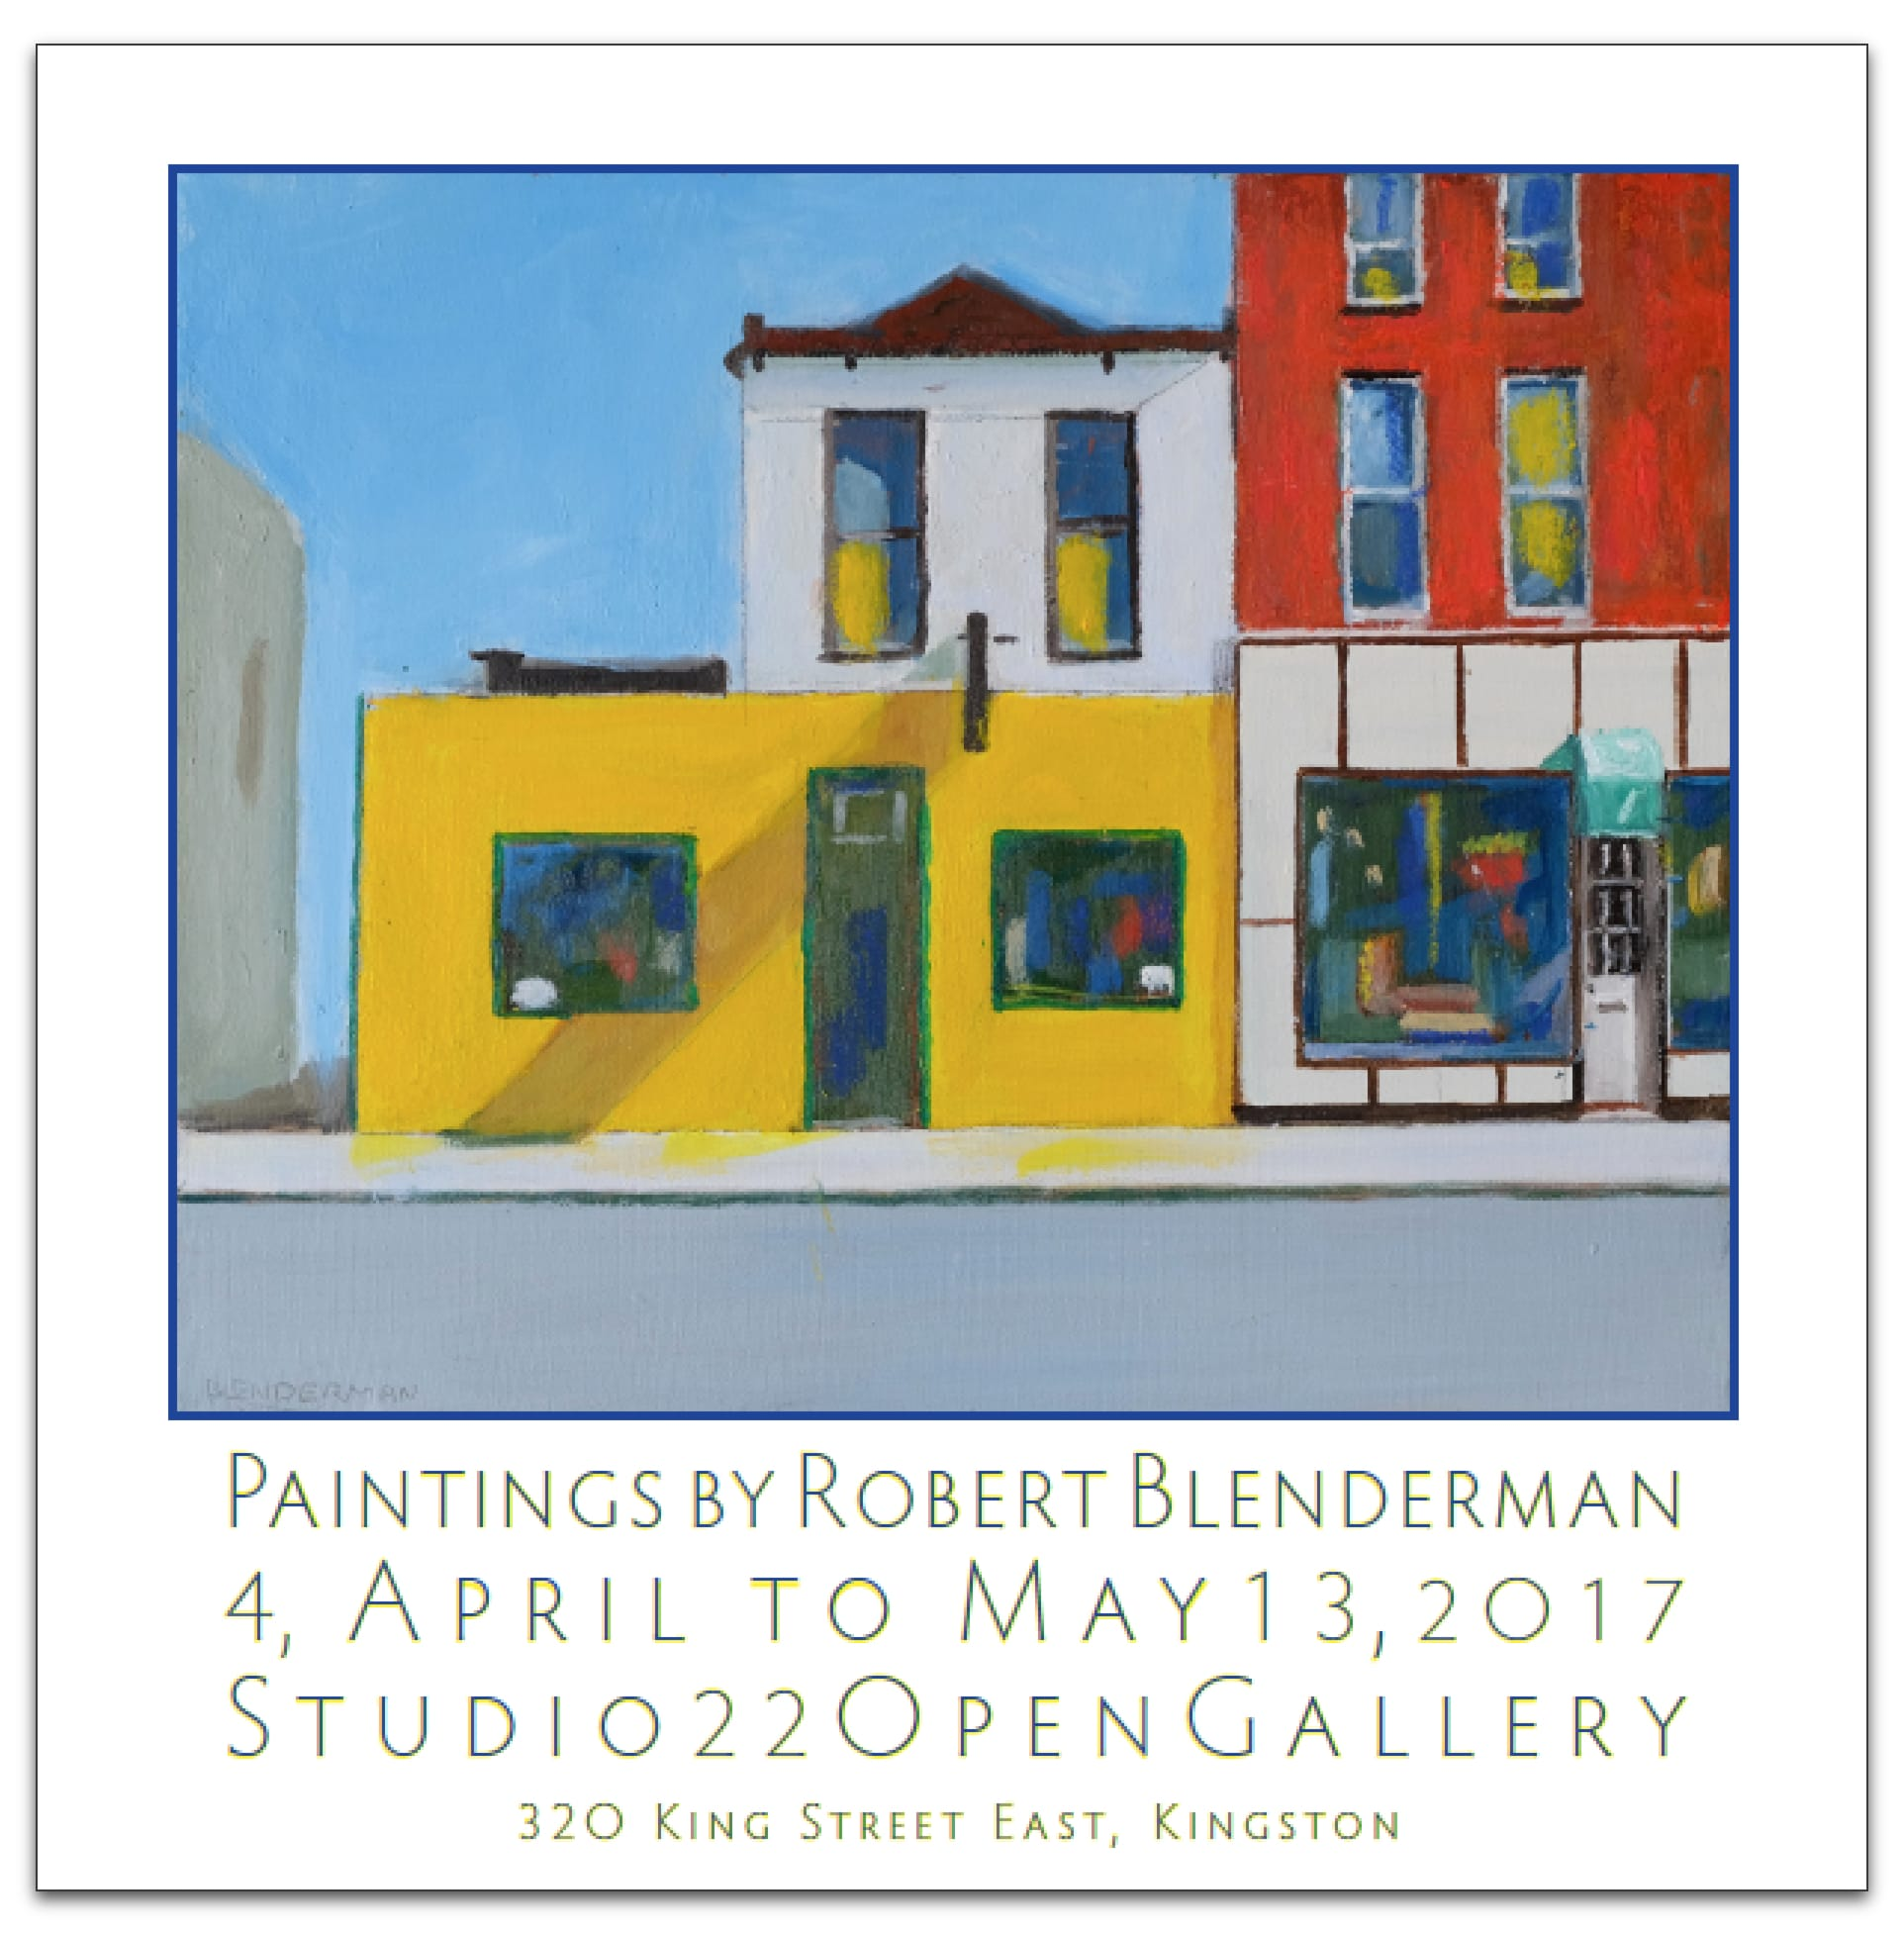 Paintings by Robert Blenderman